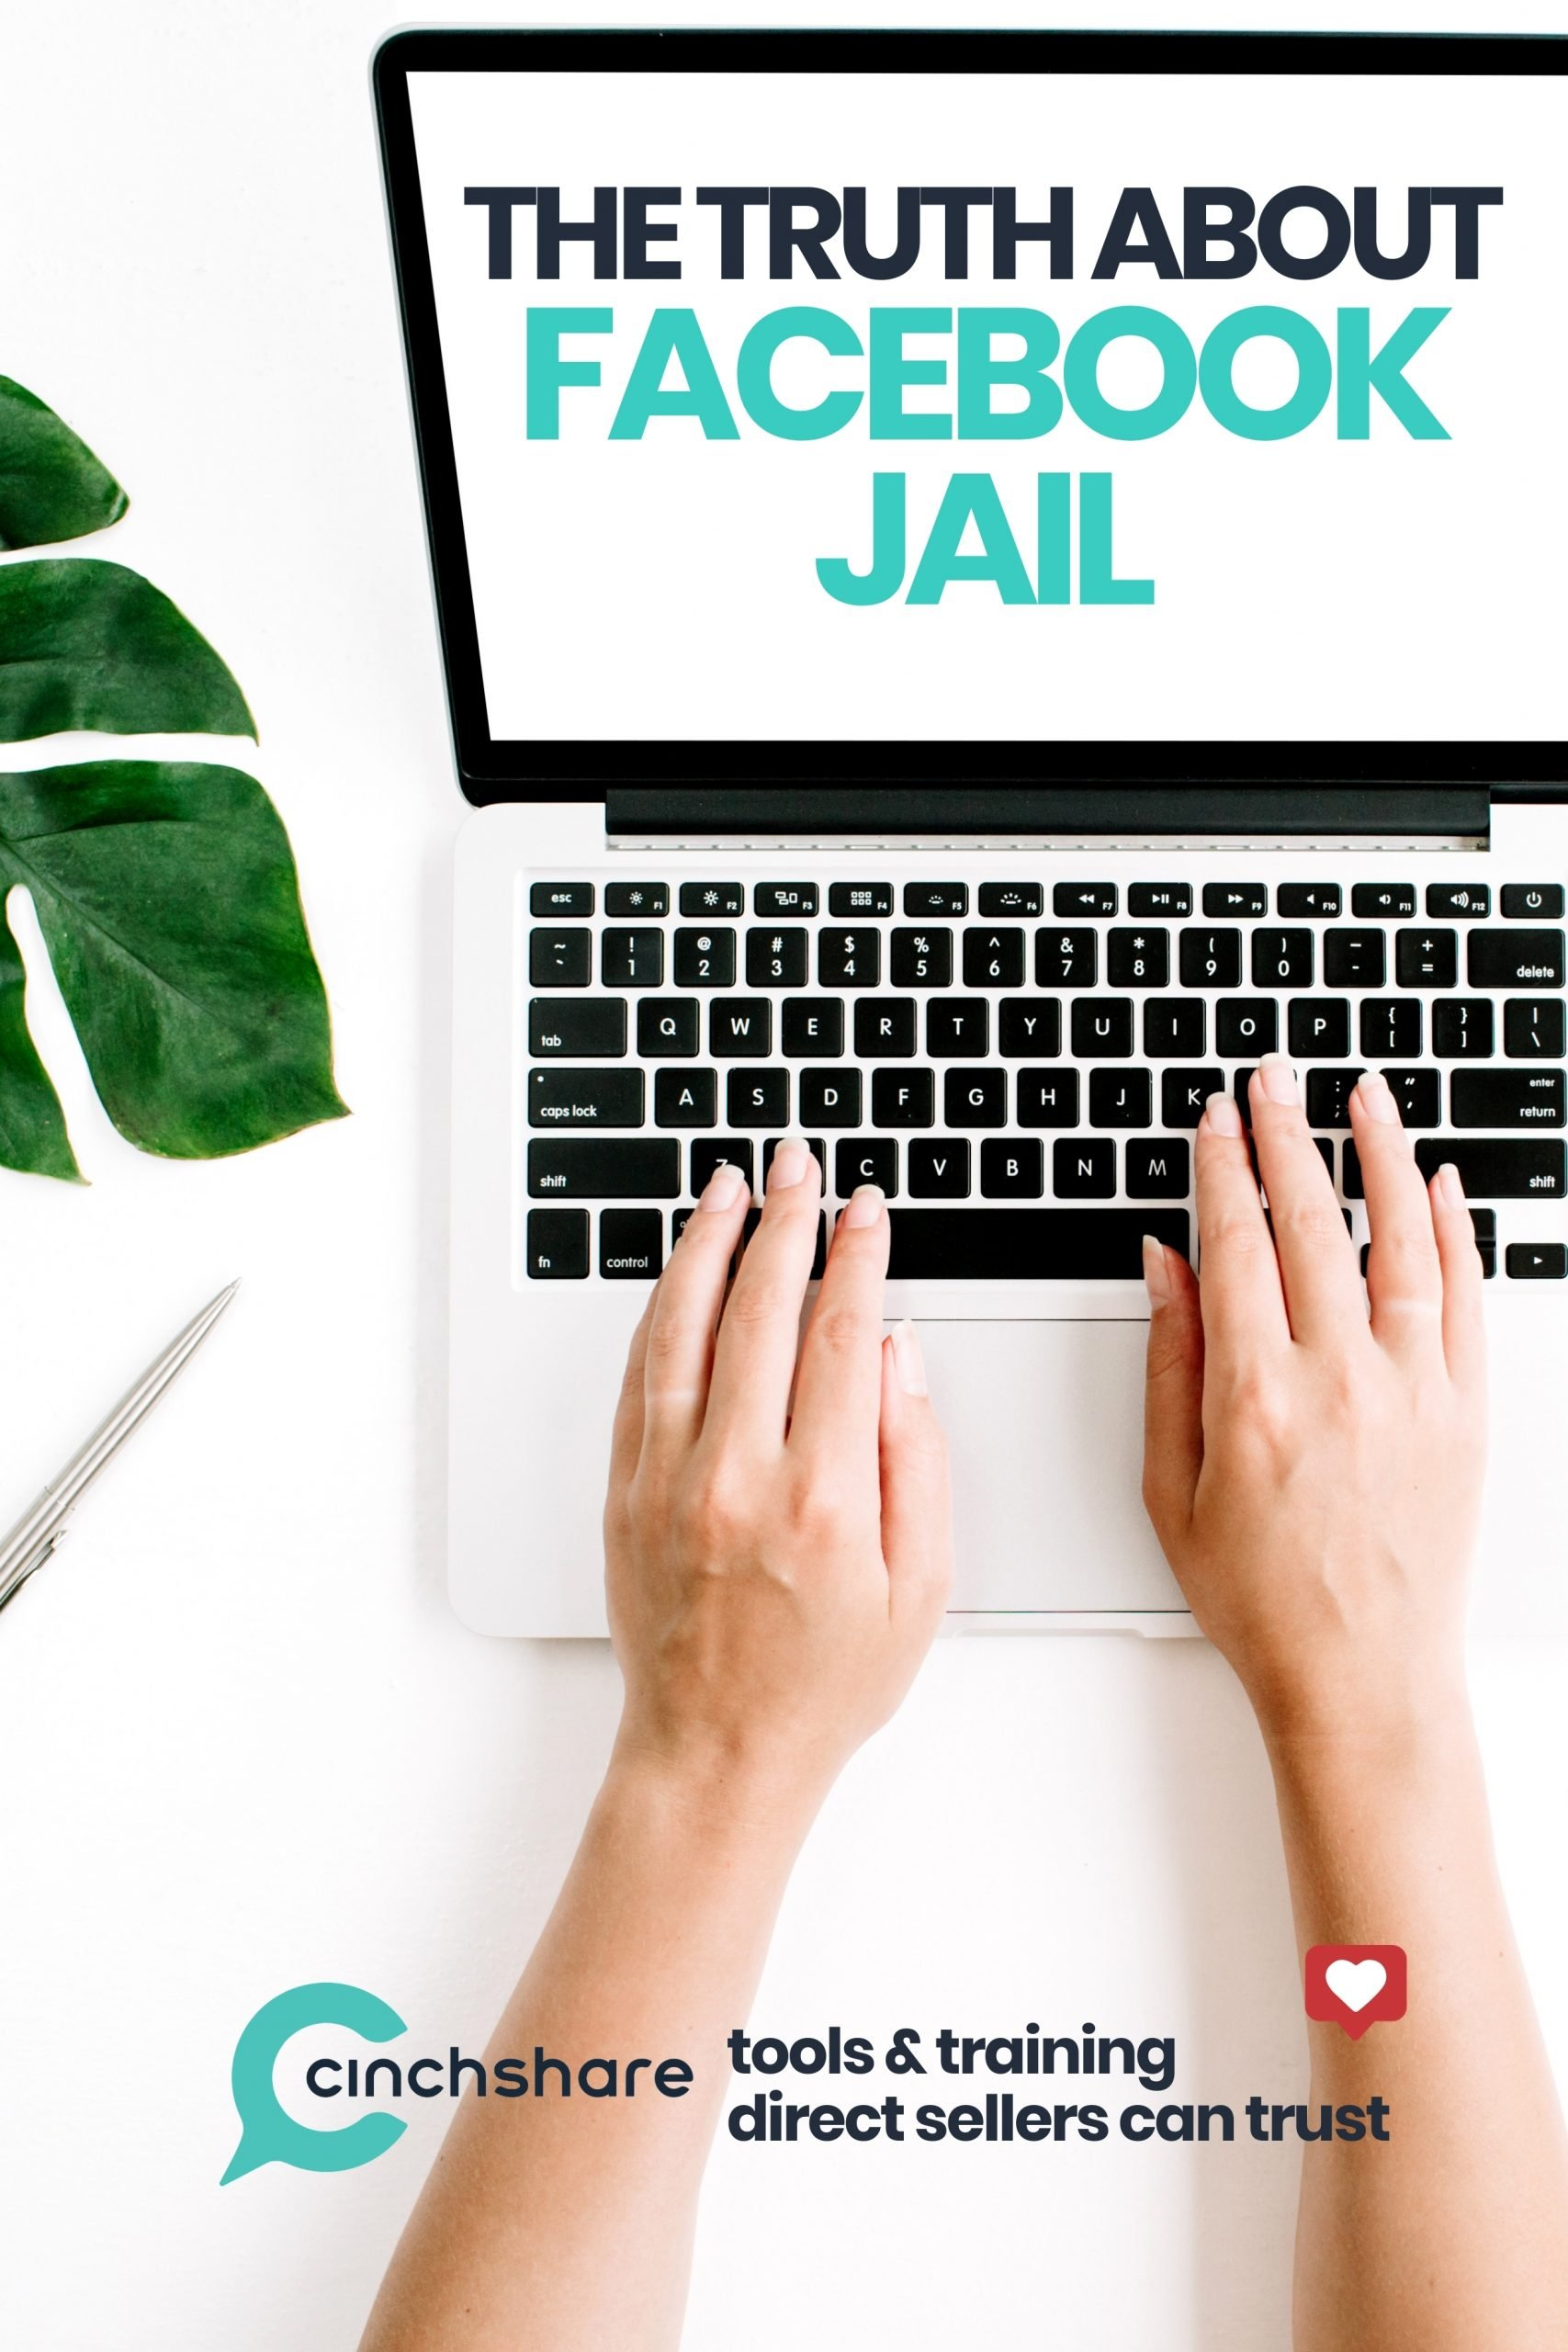 The truth about Facebook Jail